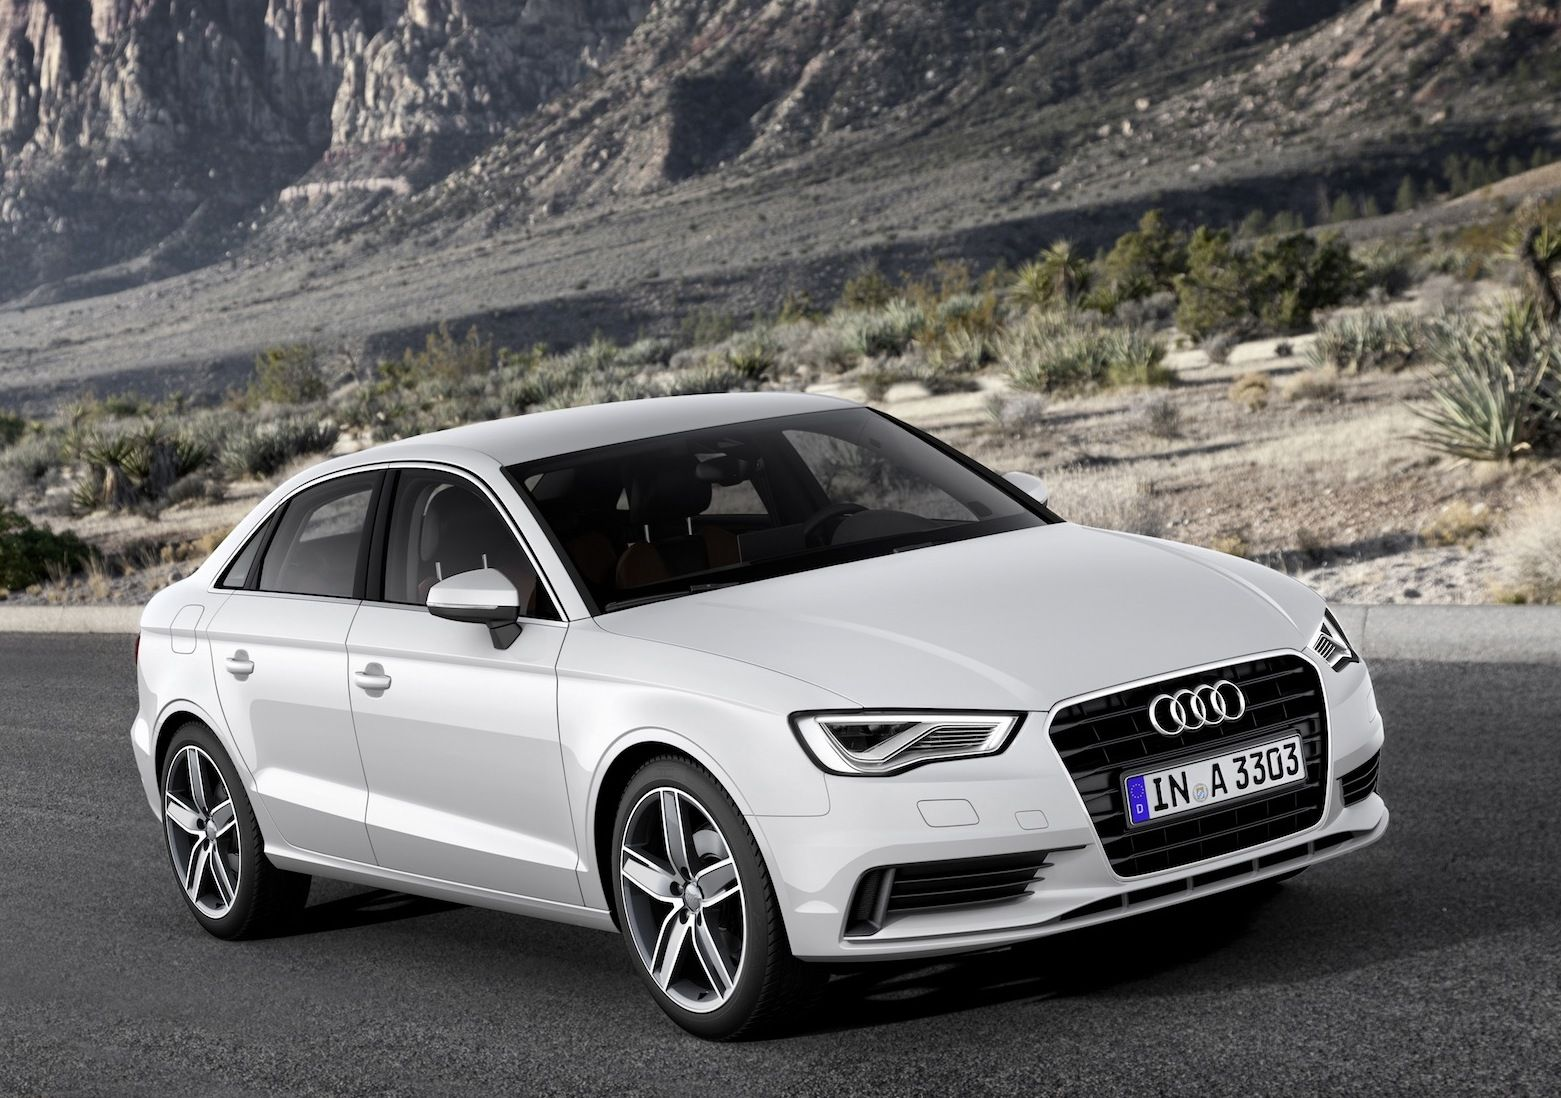 2015 Audi A3 Owners Manual - http://www.ownersmanualsite.com/